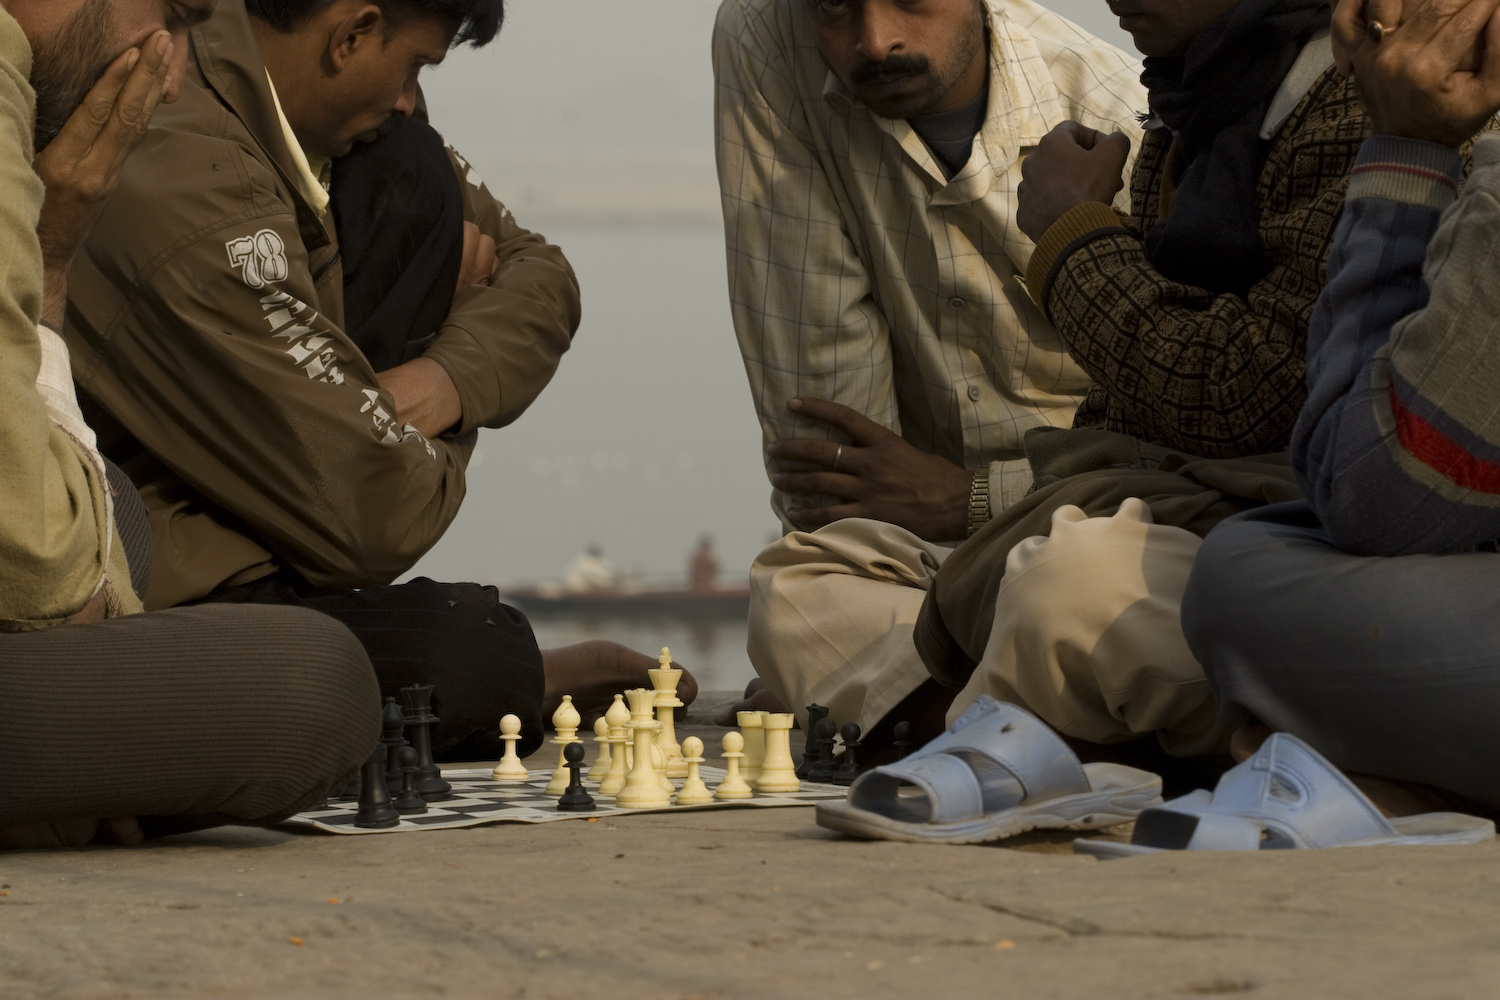 Chess play at the banks of the Ganges River in Varanassi, India. Juego de ajedrez a la orilla del rio Ganges en Varanassi, India.